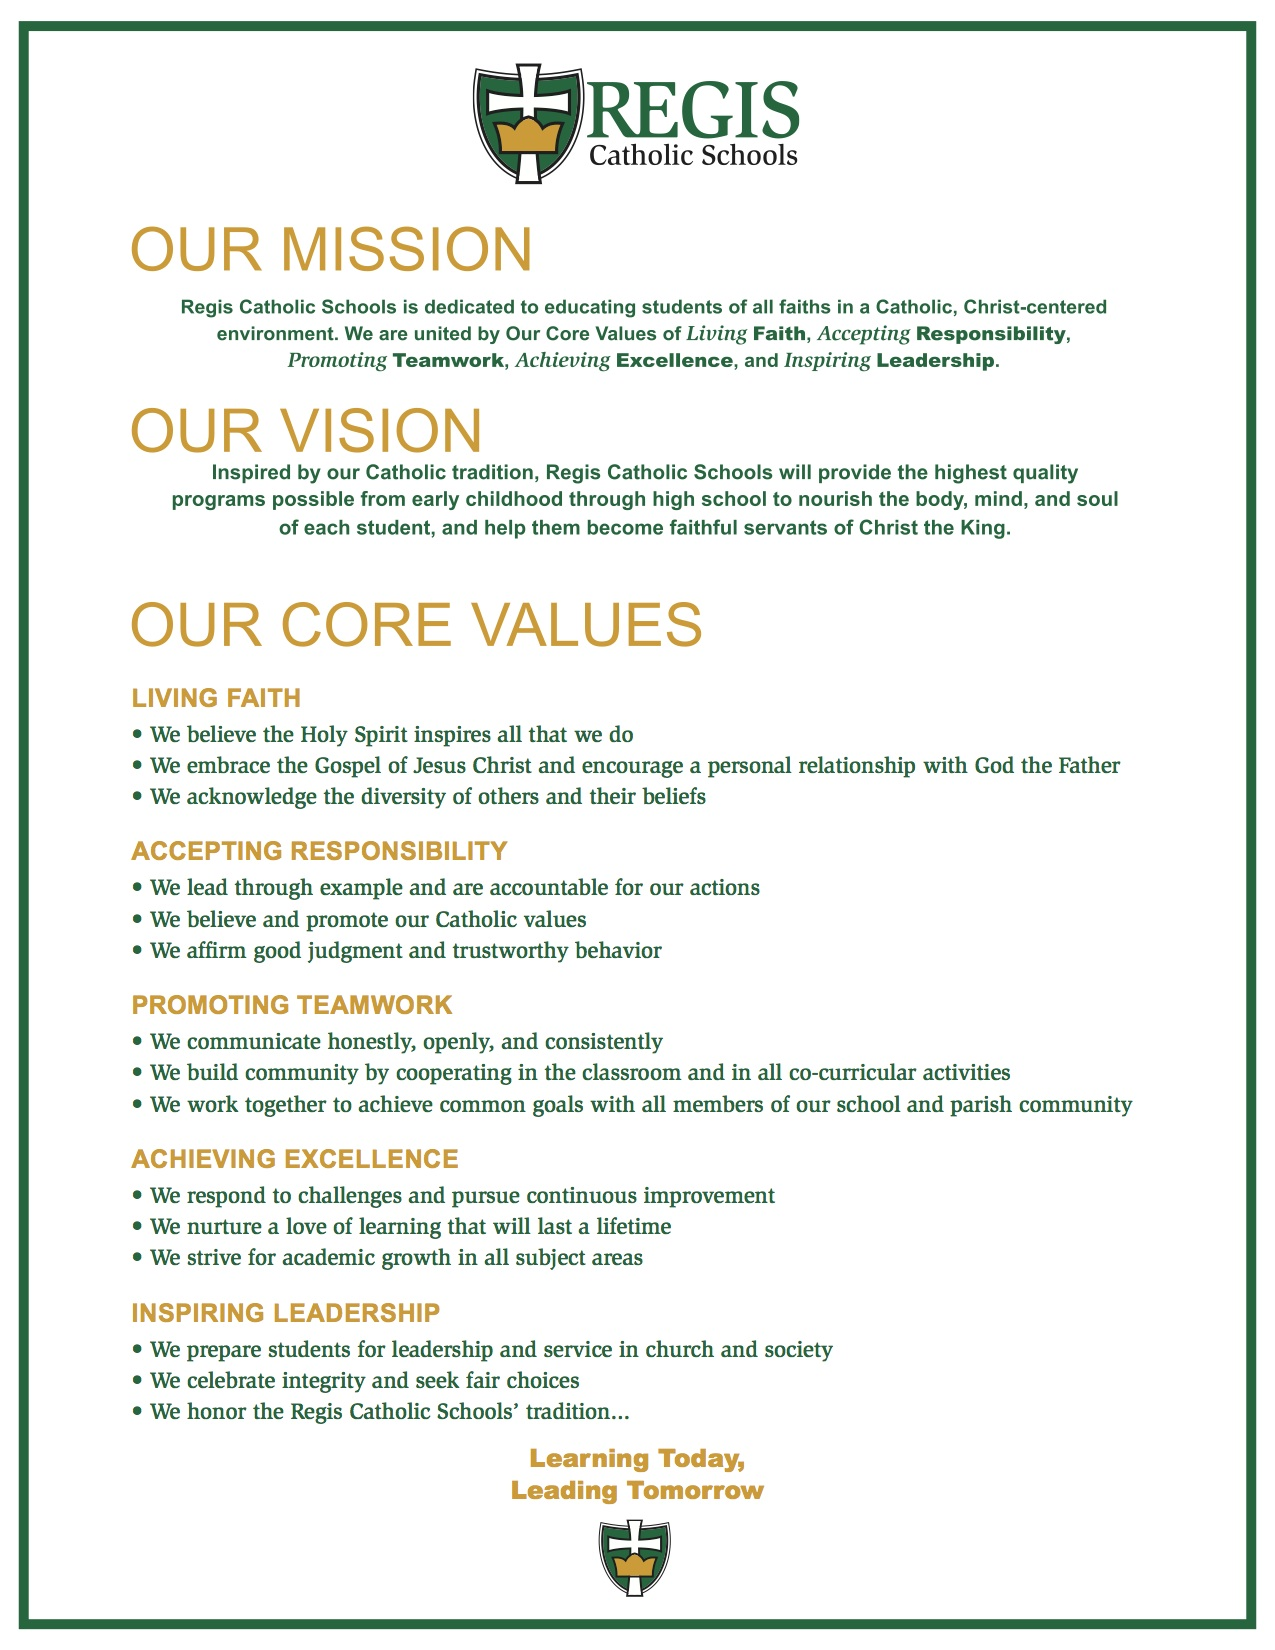 siemens vision and mission statement Online catalogue of value statements, mission statements, vision statements and value drivers examplesas used by organisations from around the world.